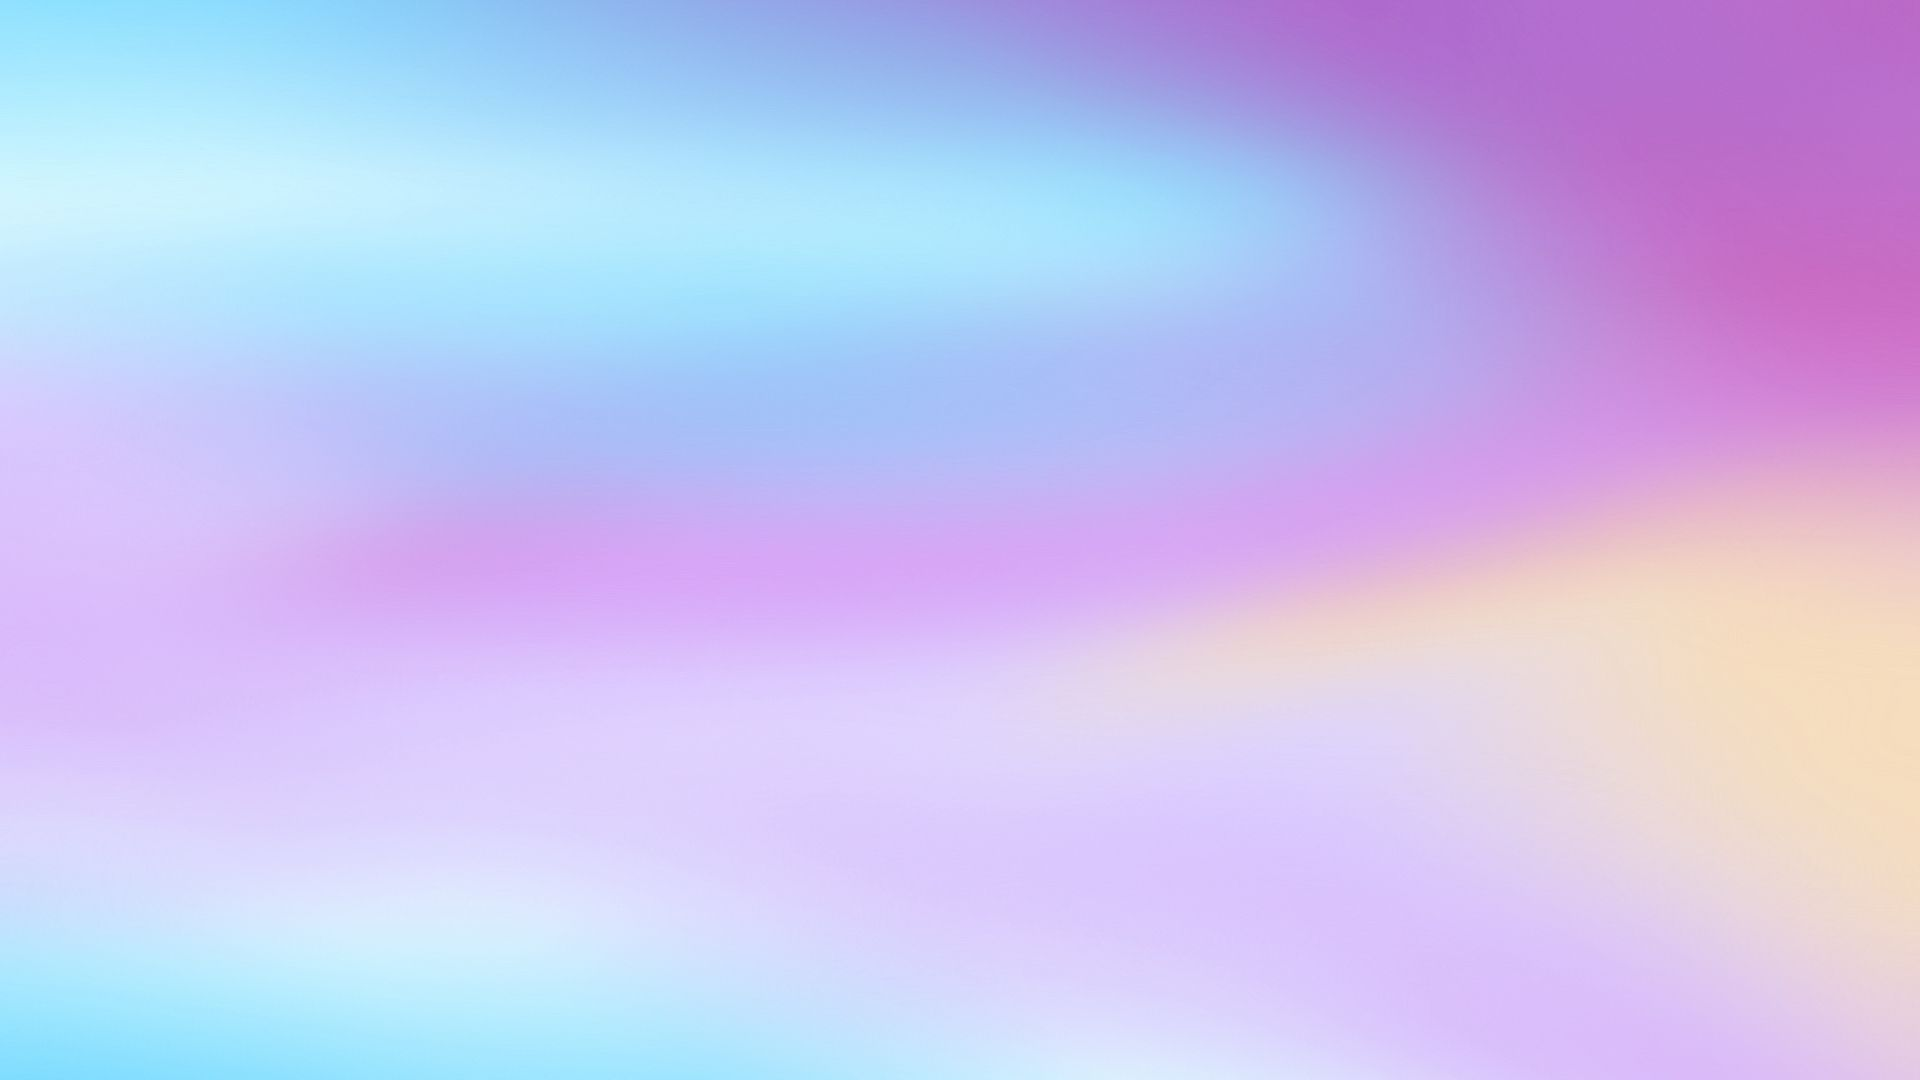 Colorful Hd Desktop Wallpapers For Widescreen Pastel Color Wallpaper Colorful Wallpaper Pastel Wallpaper